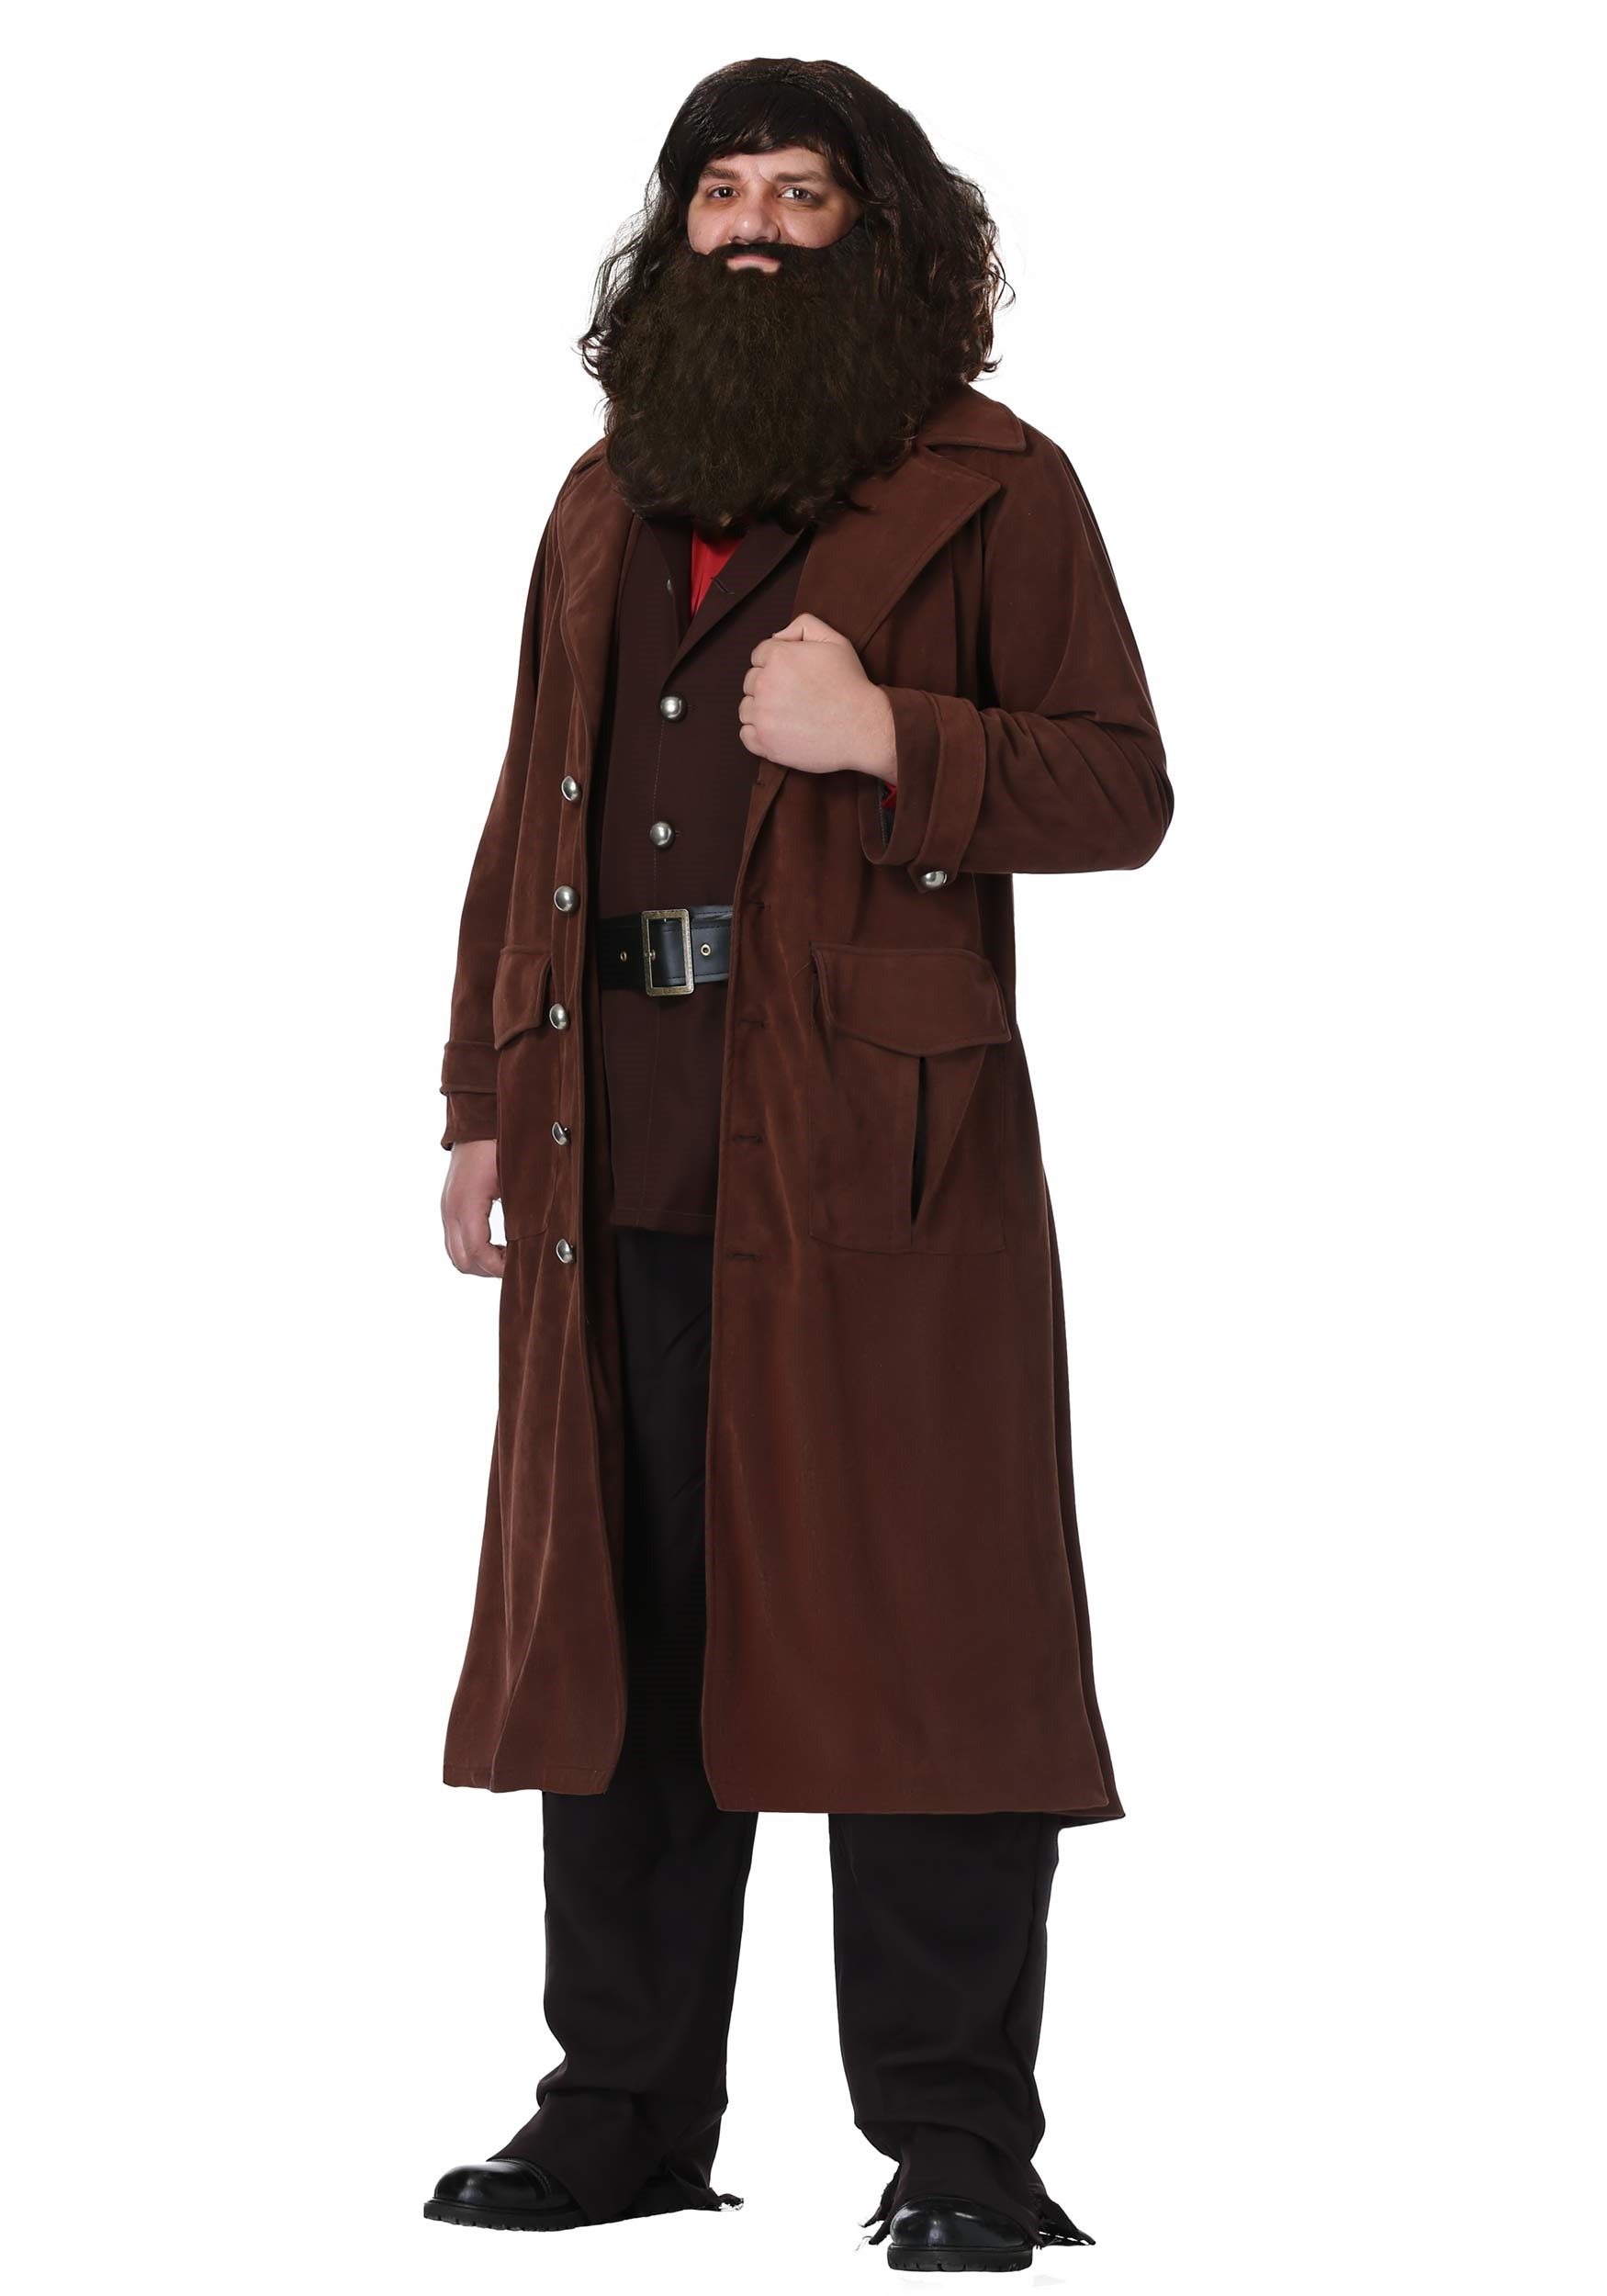 Deluxe Hagrid Costume for Adults